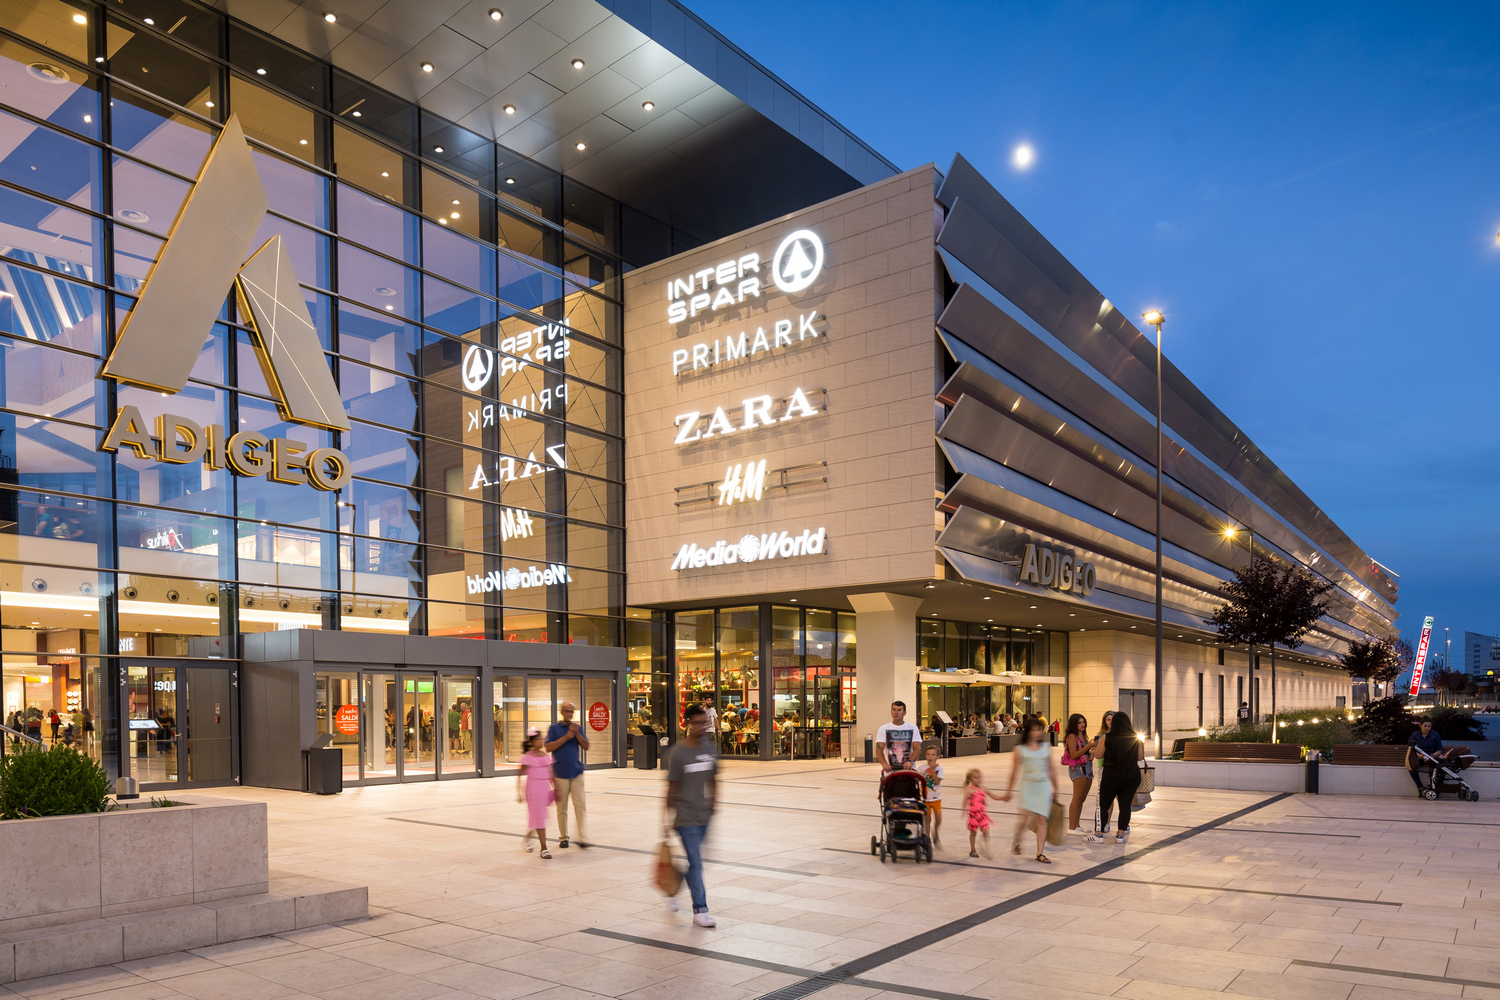 Icsc Awards Adigeo Verona Best New Development At European Shopping Center Awards Recognition For Refurbishment Of Pep Munich Across The European Placemaking Magazine